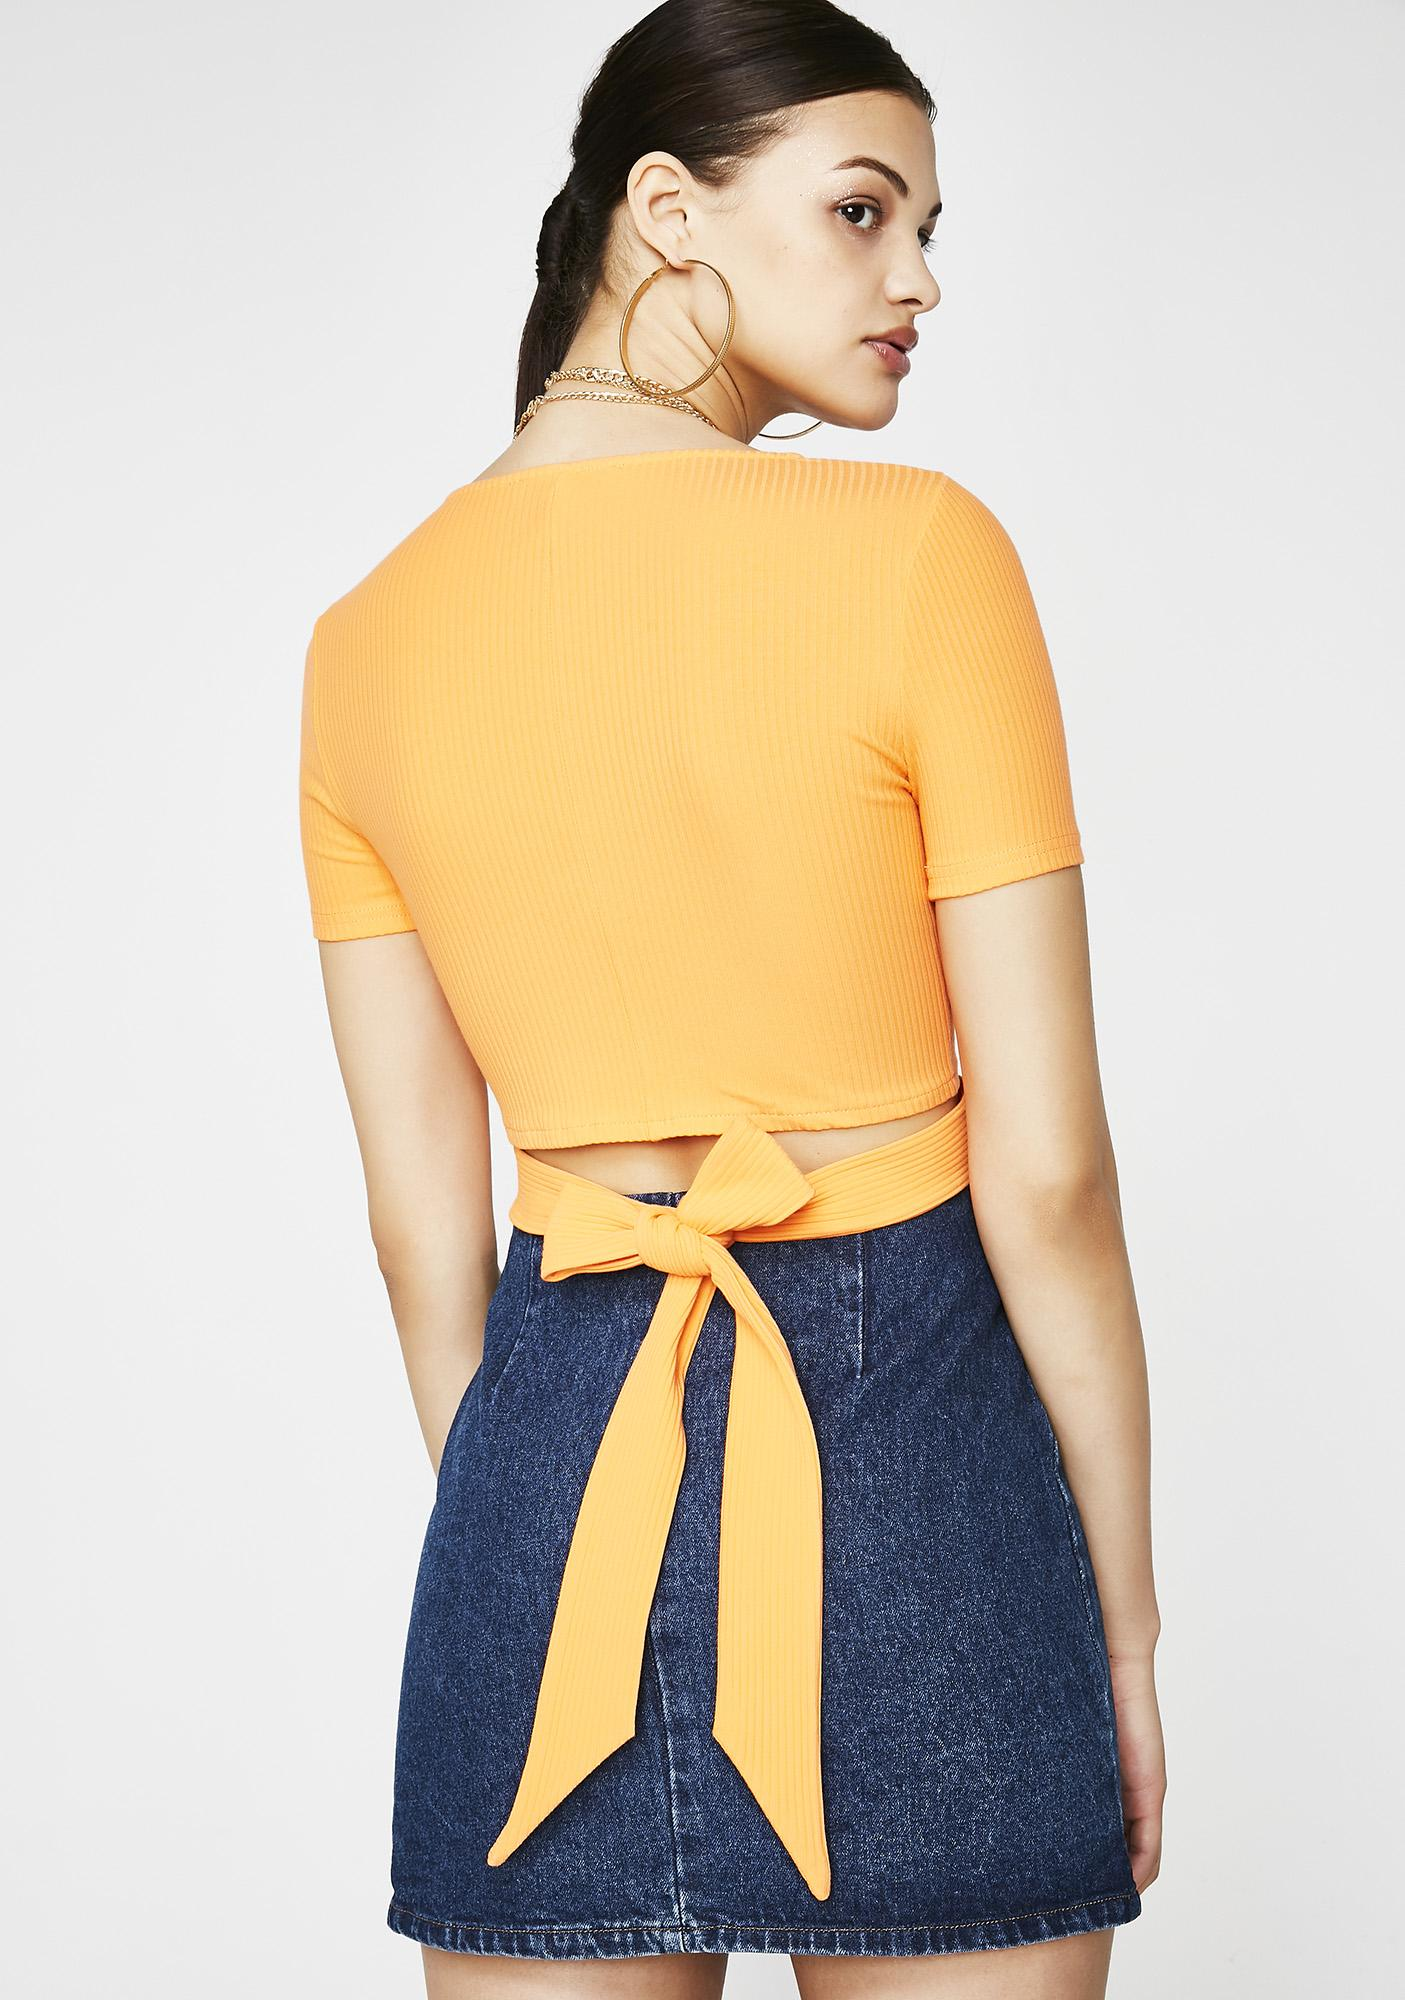 Clementine Cutie Crop Top by Dance Marvel